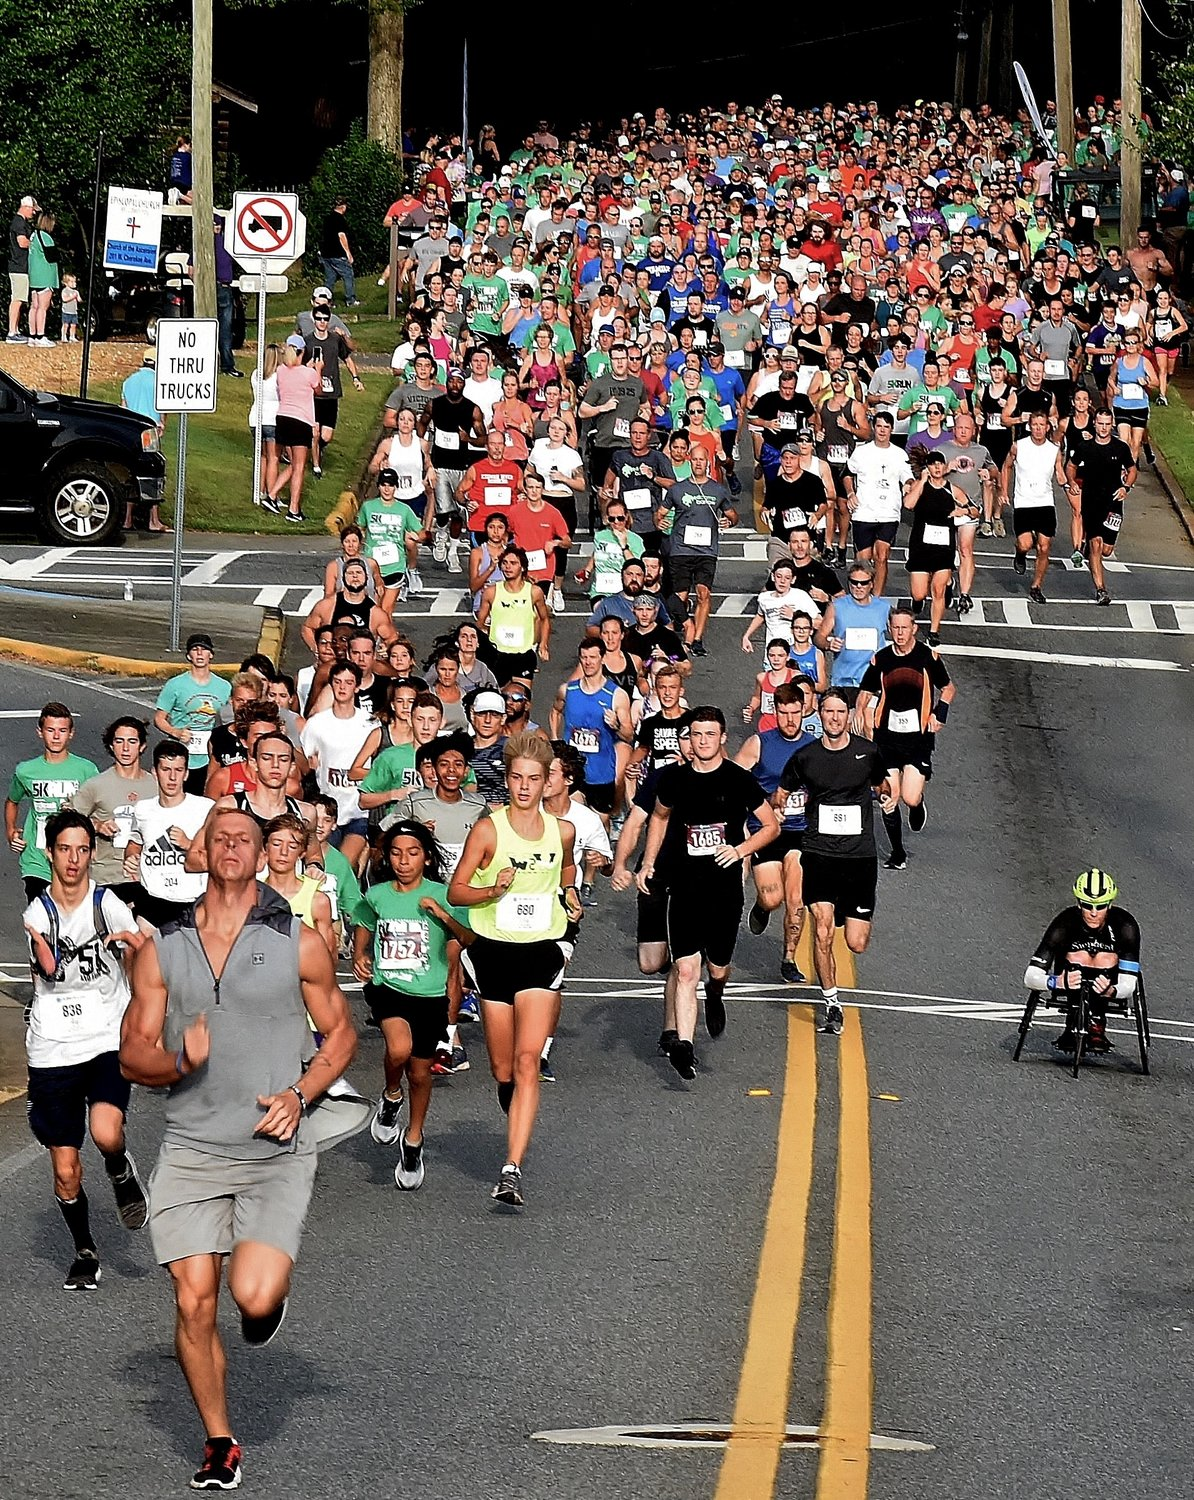 Originally set for Aug. 22, the Downtown Cartersville 5K to benefit Backpack Buddies now will be presented Oct. 31.